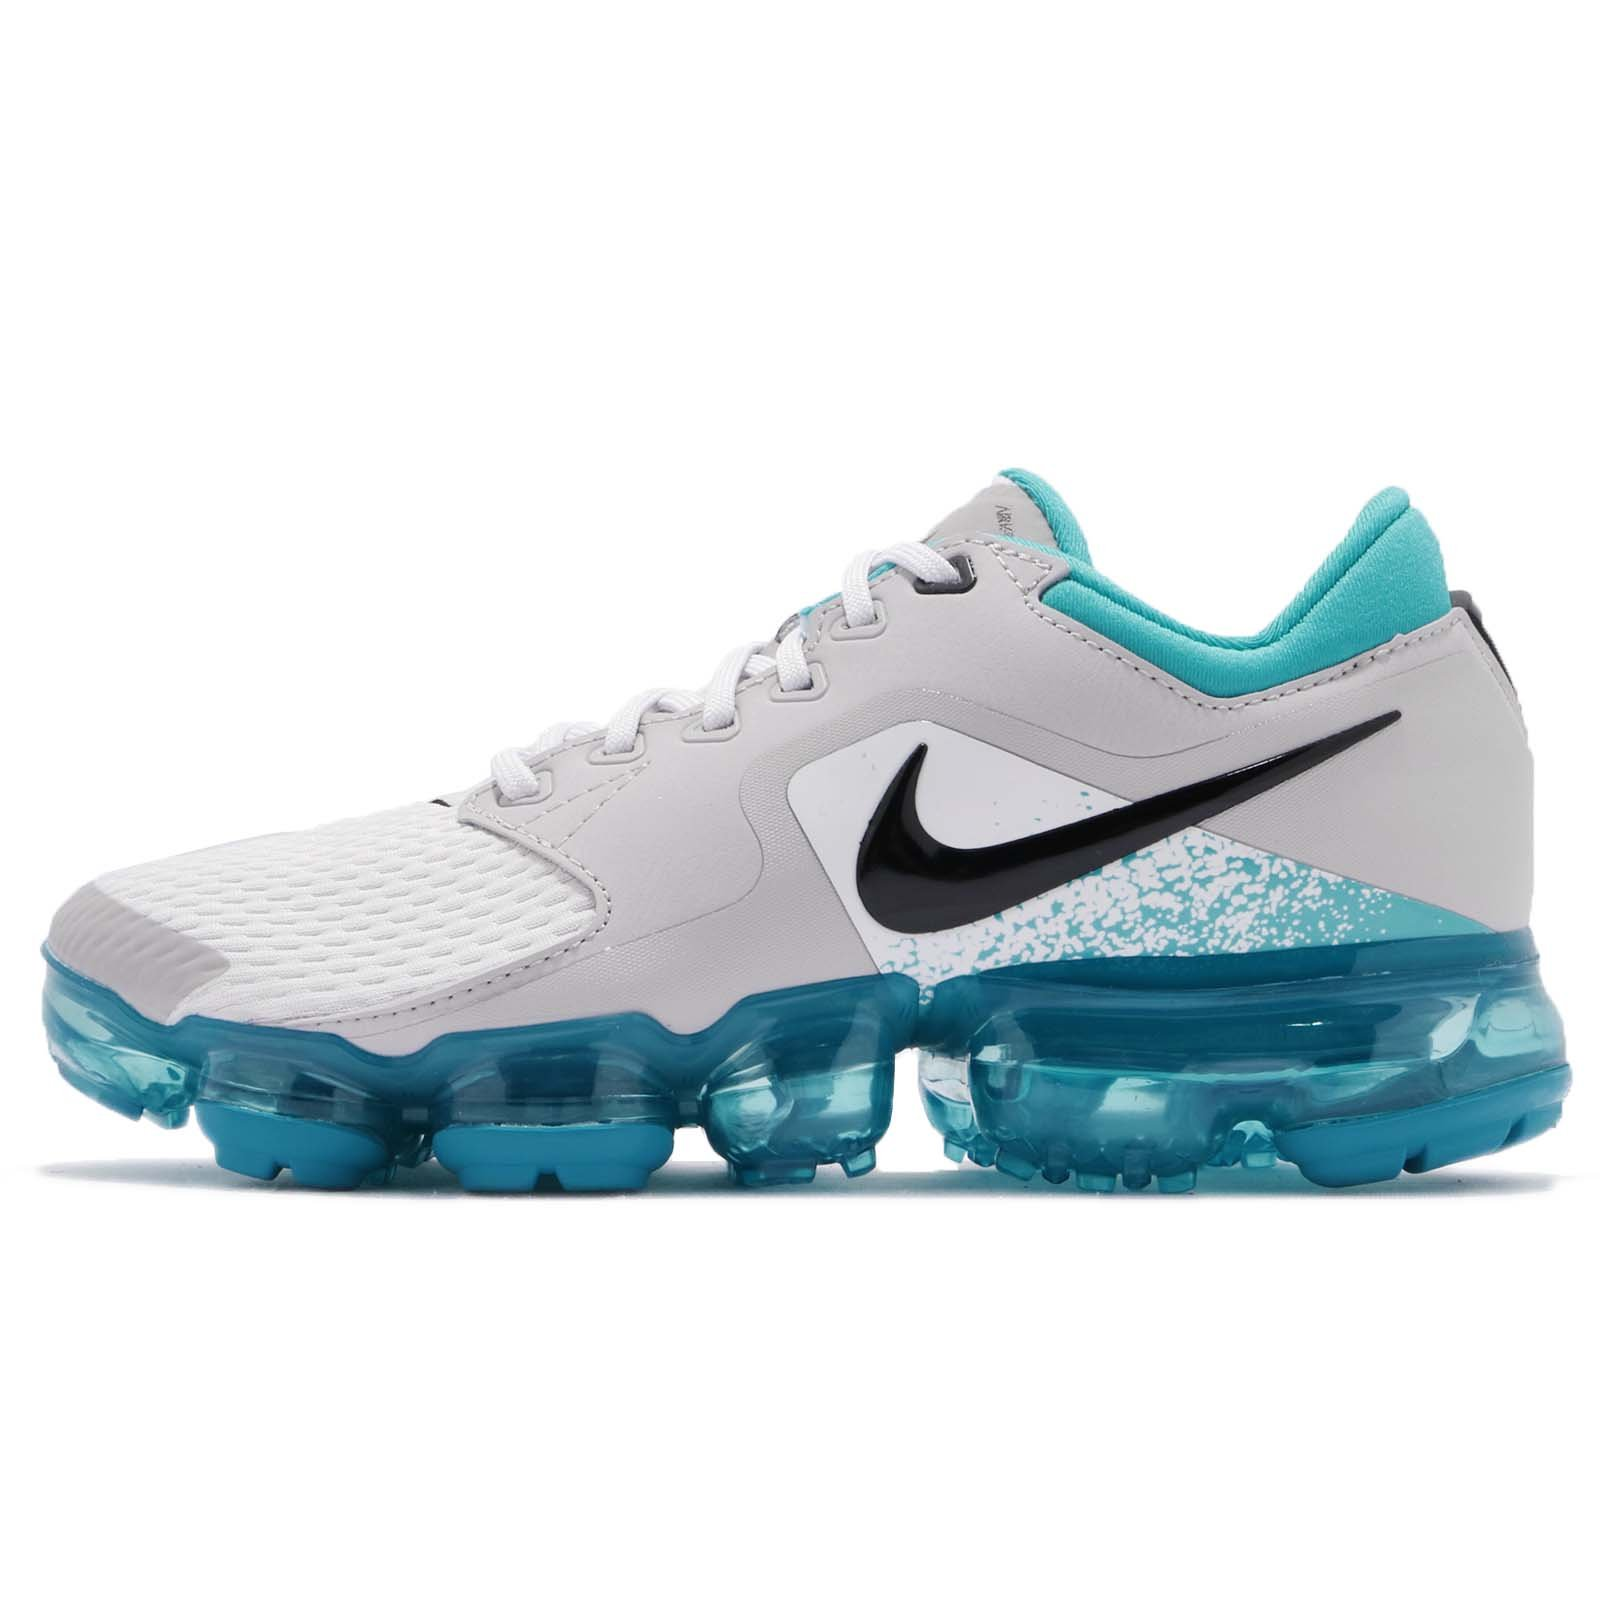 NIKE Kid's Air Vapormax GS, Vast Grey/Black-Dusty Cactus, Youth Size 6.5